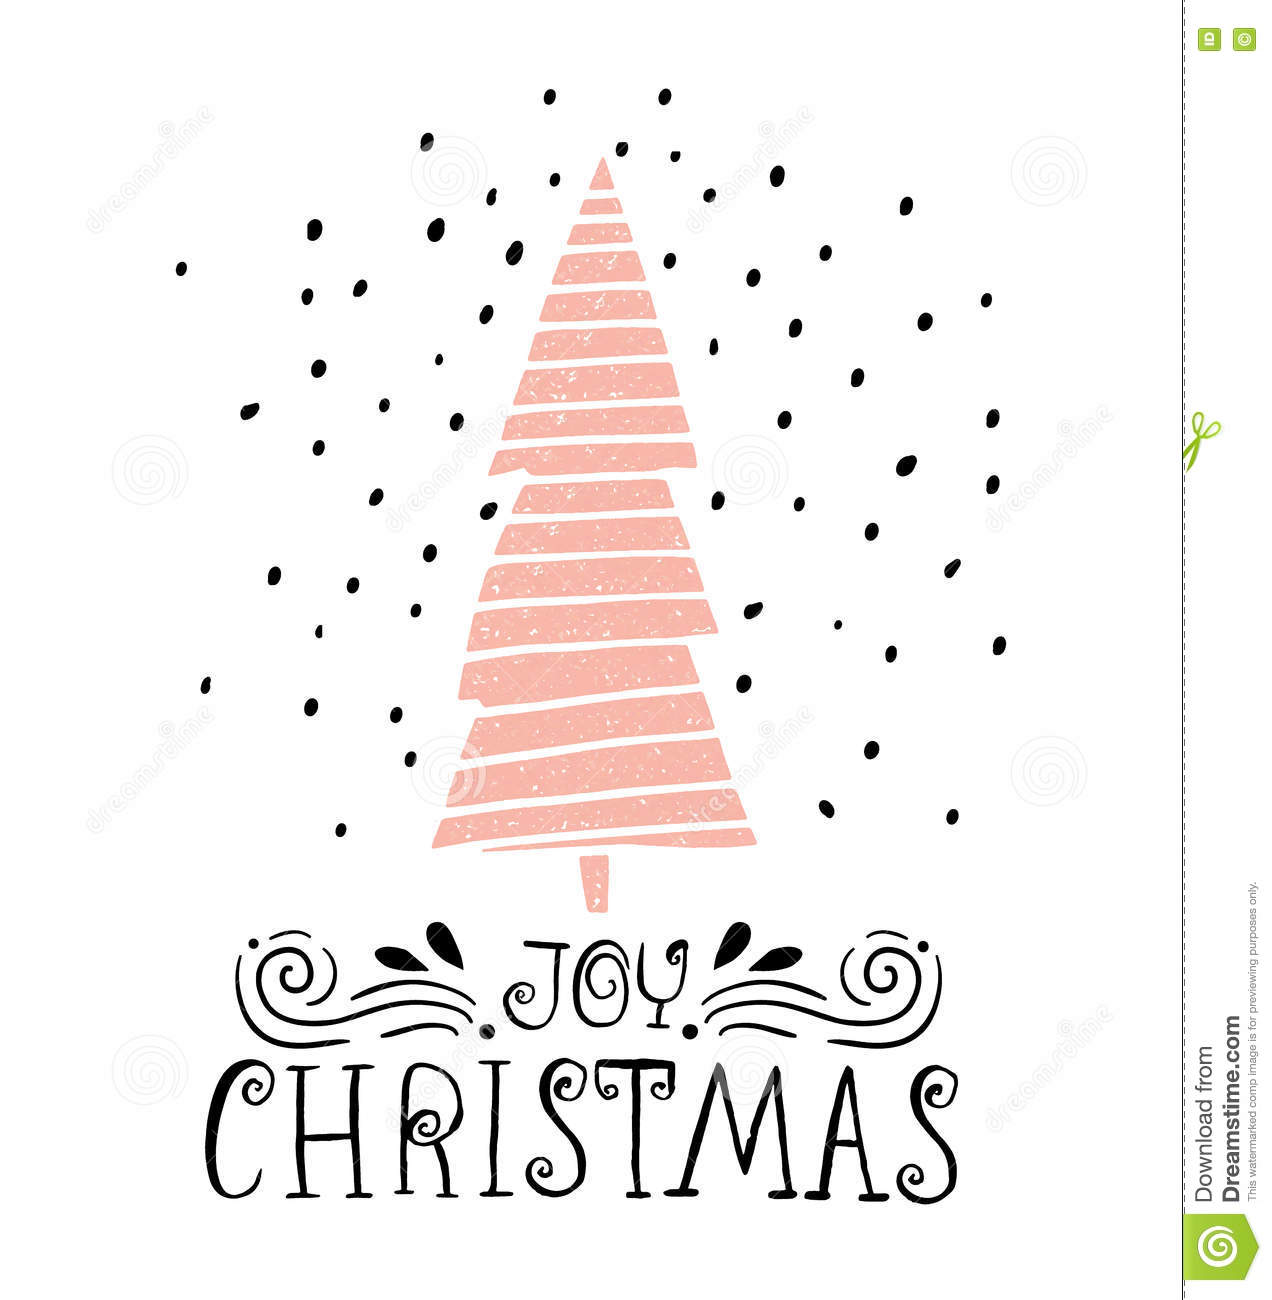 Joy christmas winter holiday saying hand drawn greeting card with download comp m4hsunfo